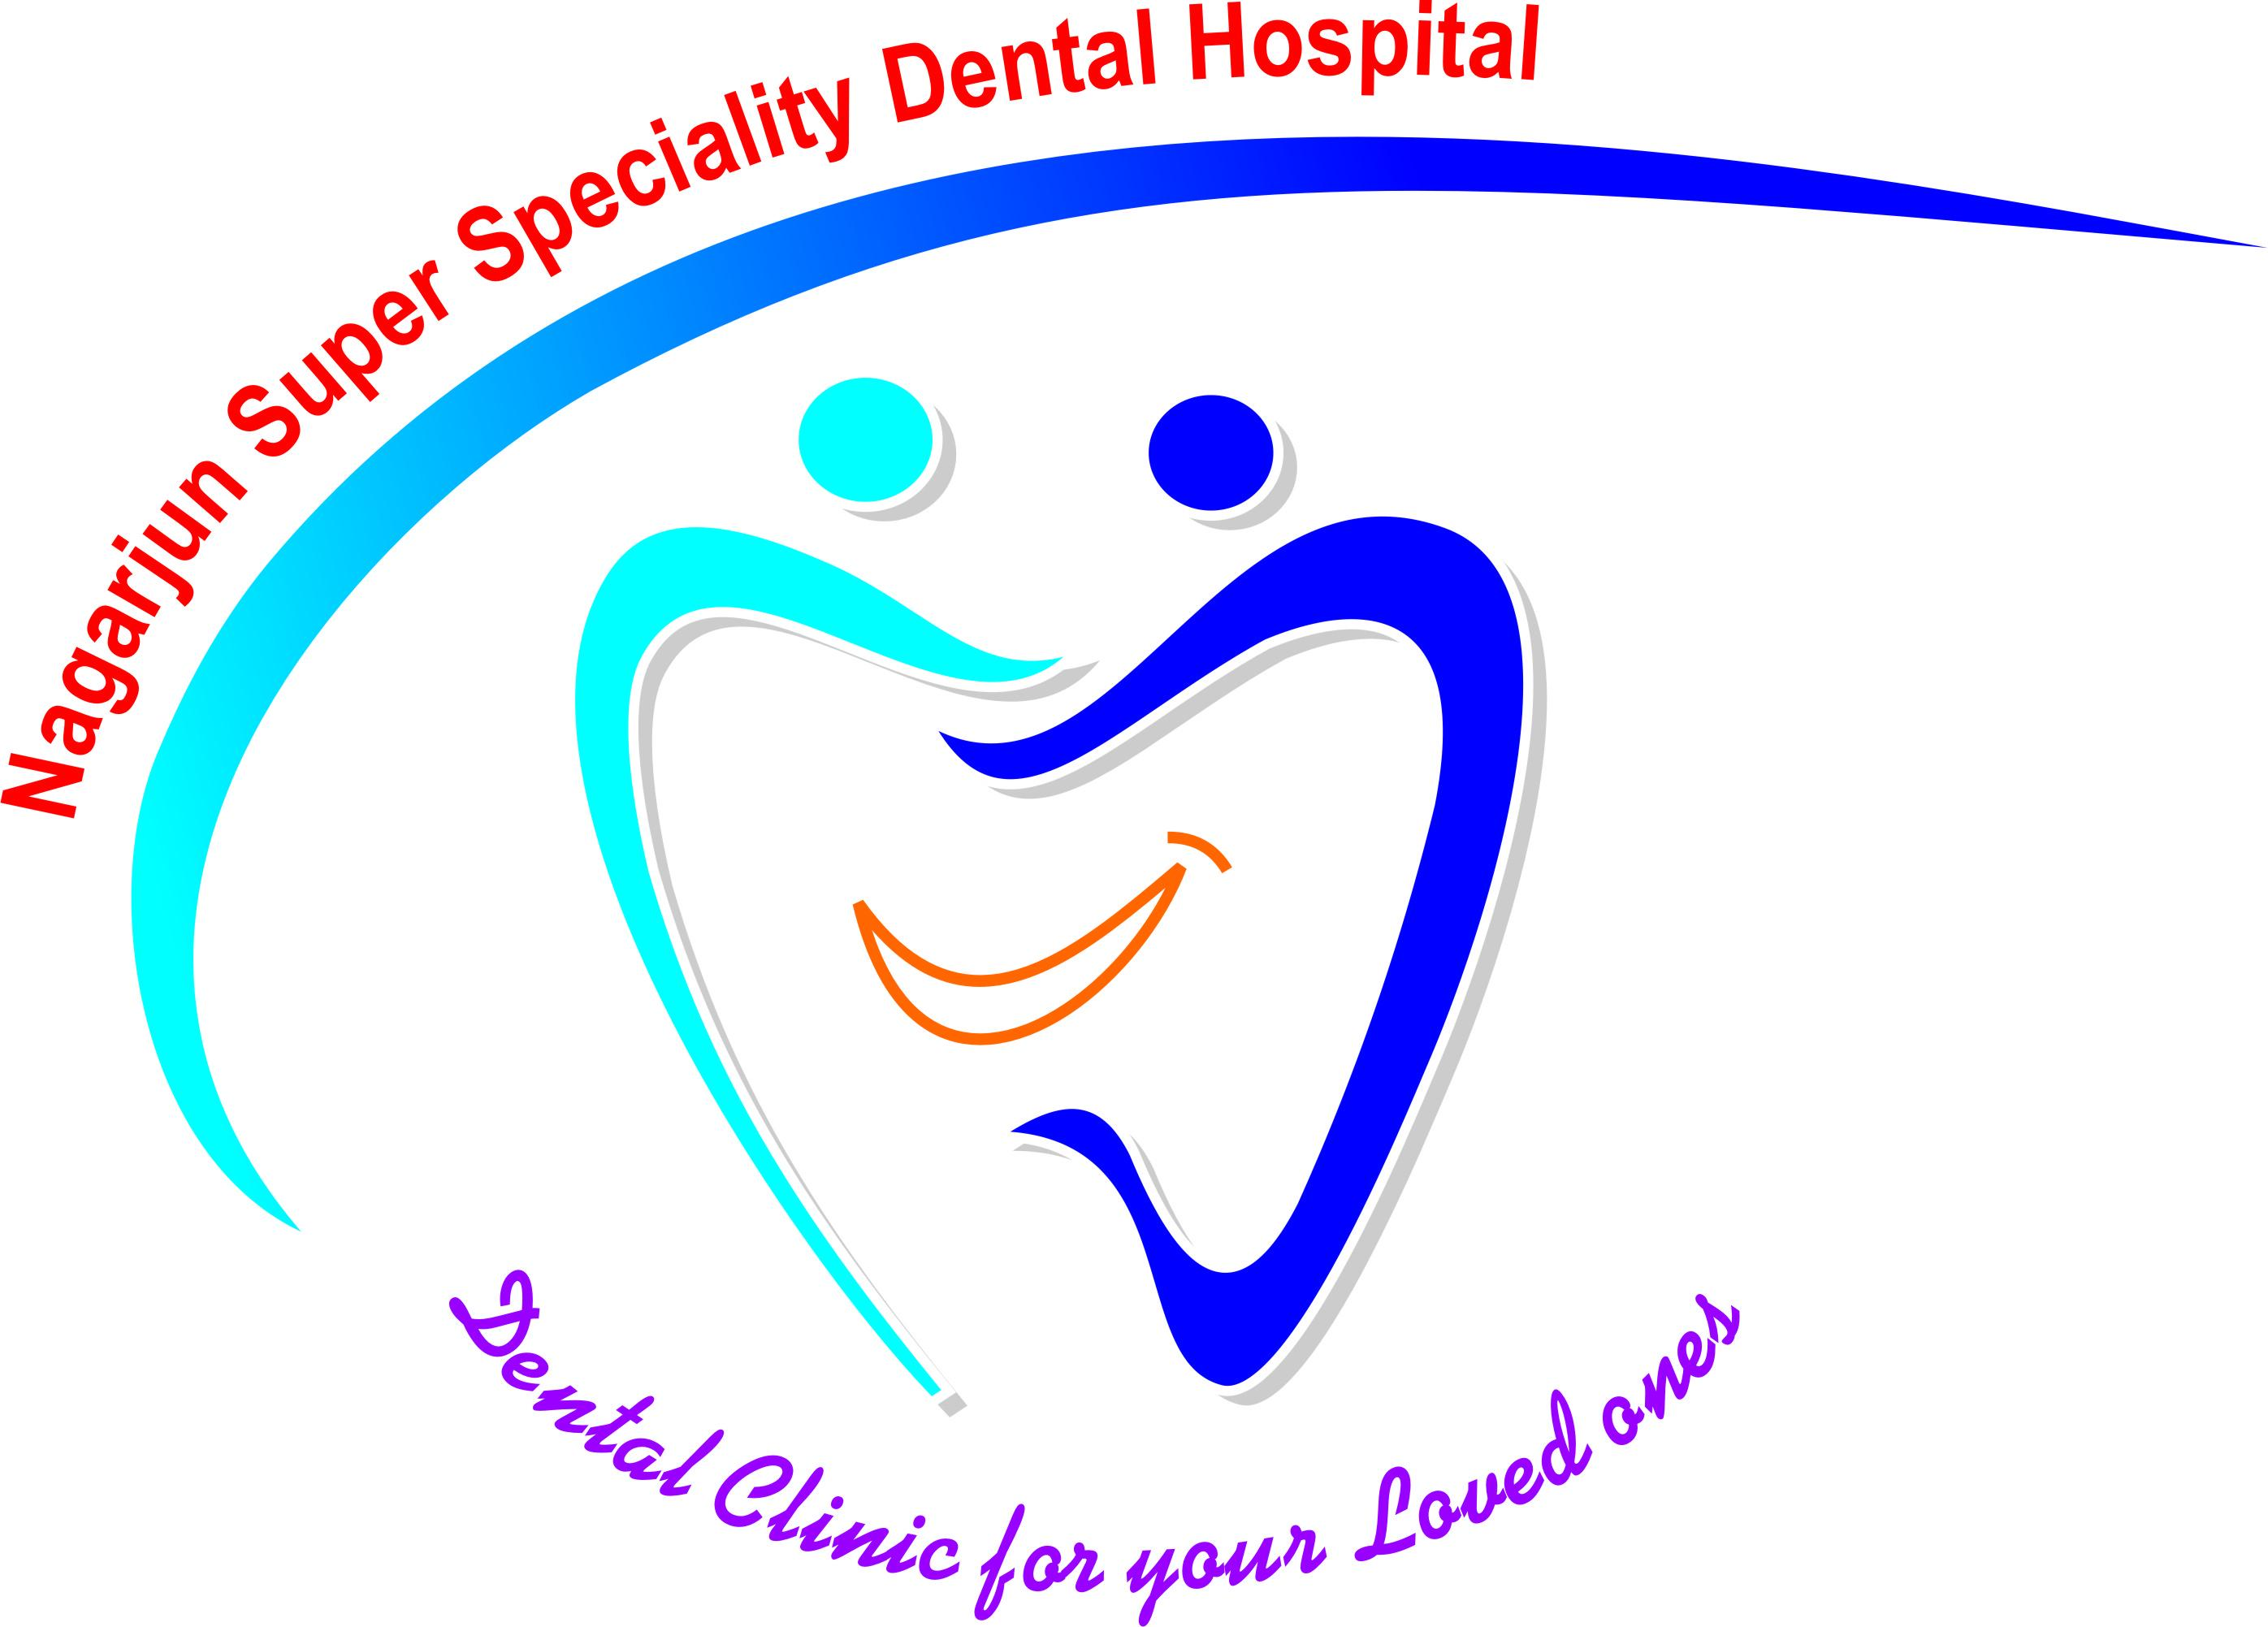 Nagarjun Superspeciality Dental Hospital